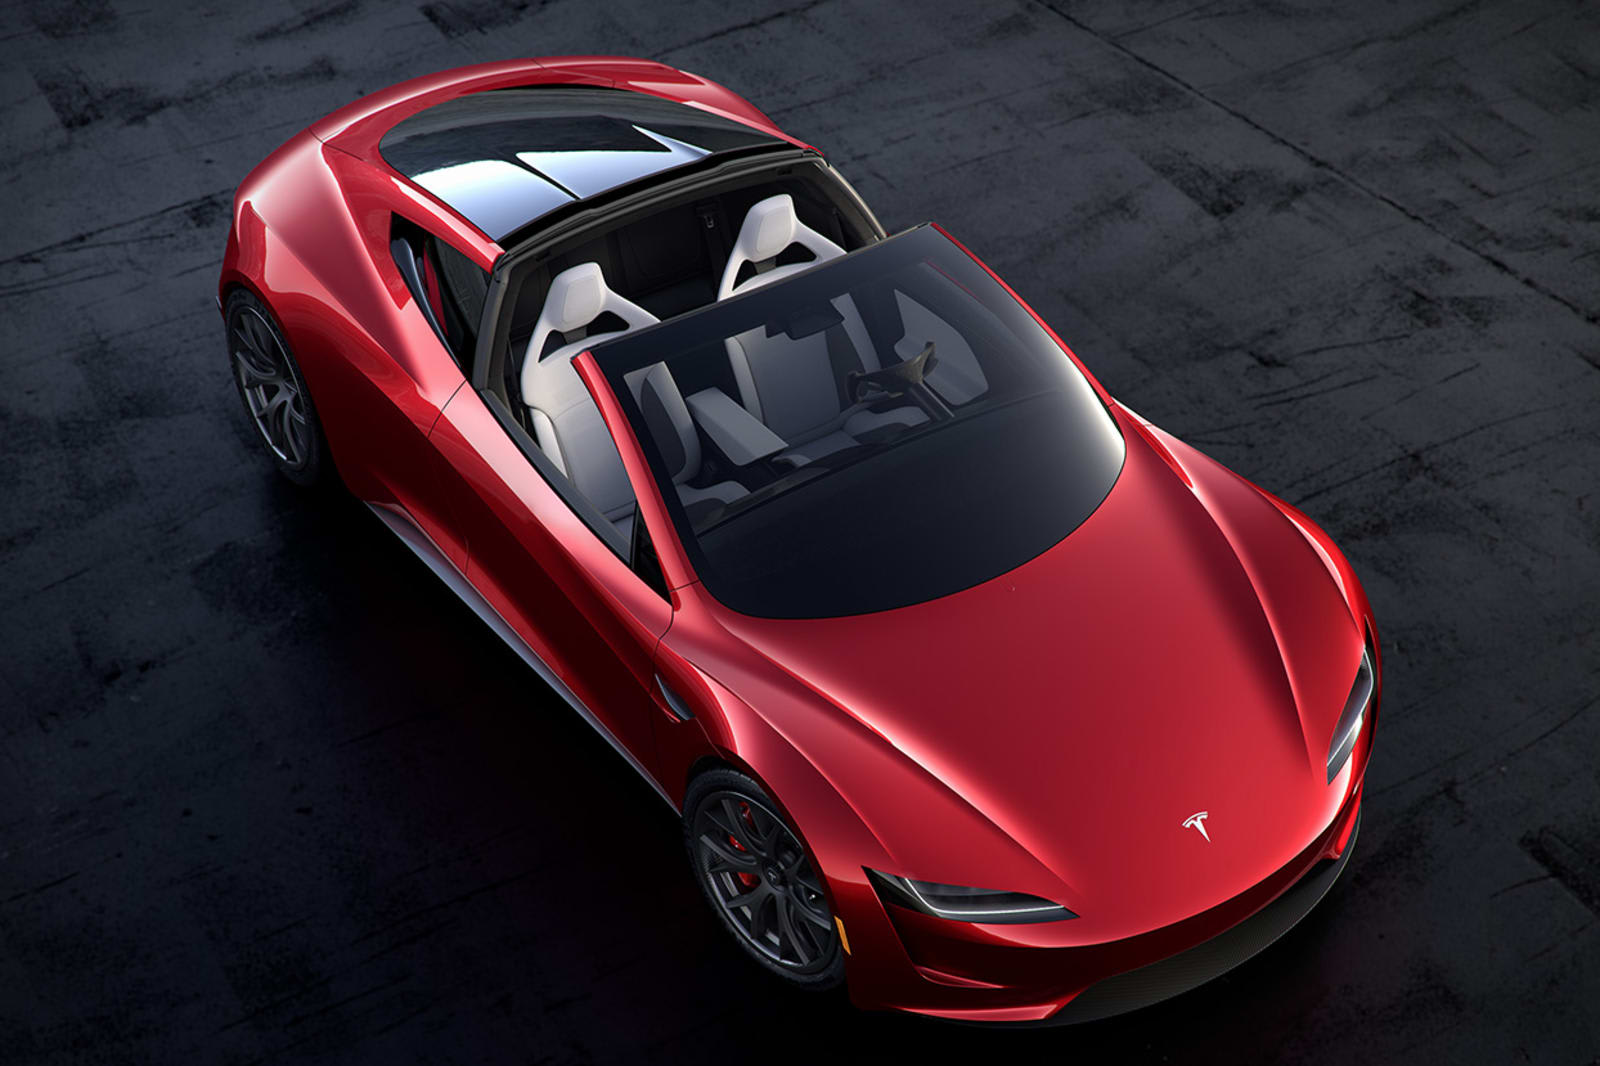 Tesla's Roadster prompts Koenigsegg to rethink its supercars